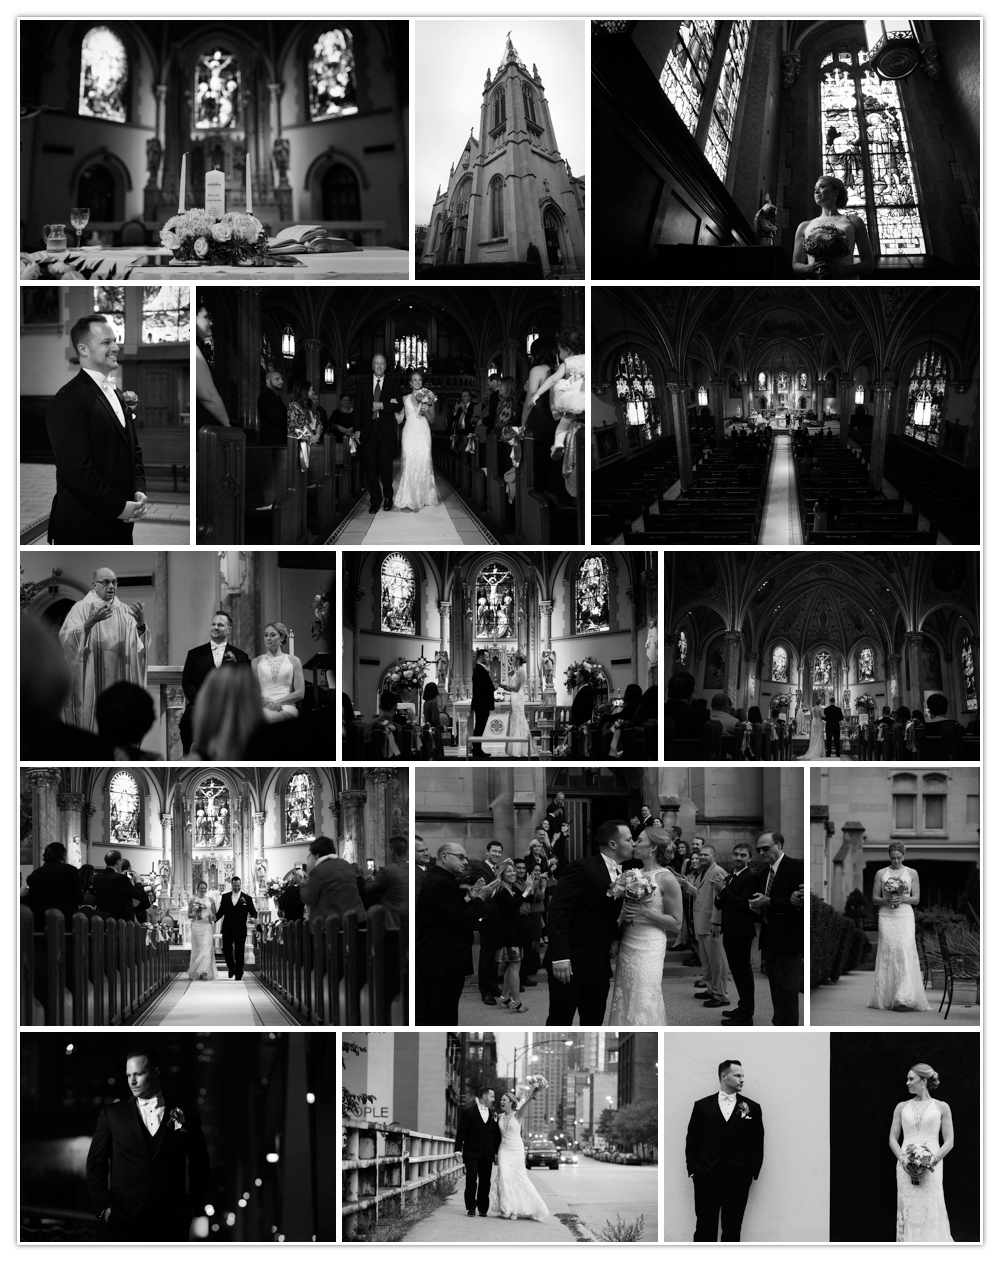 Carnivale-EdmundsChurch-oakpark-wedding-love-photography